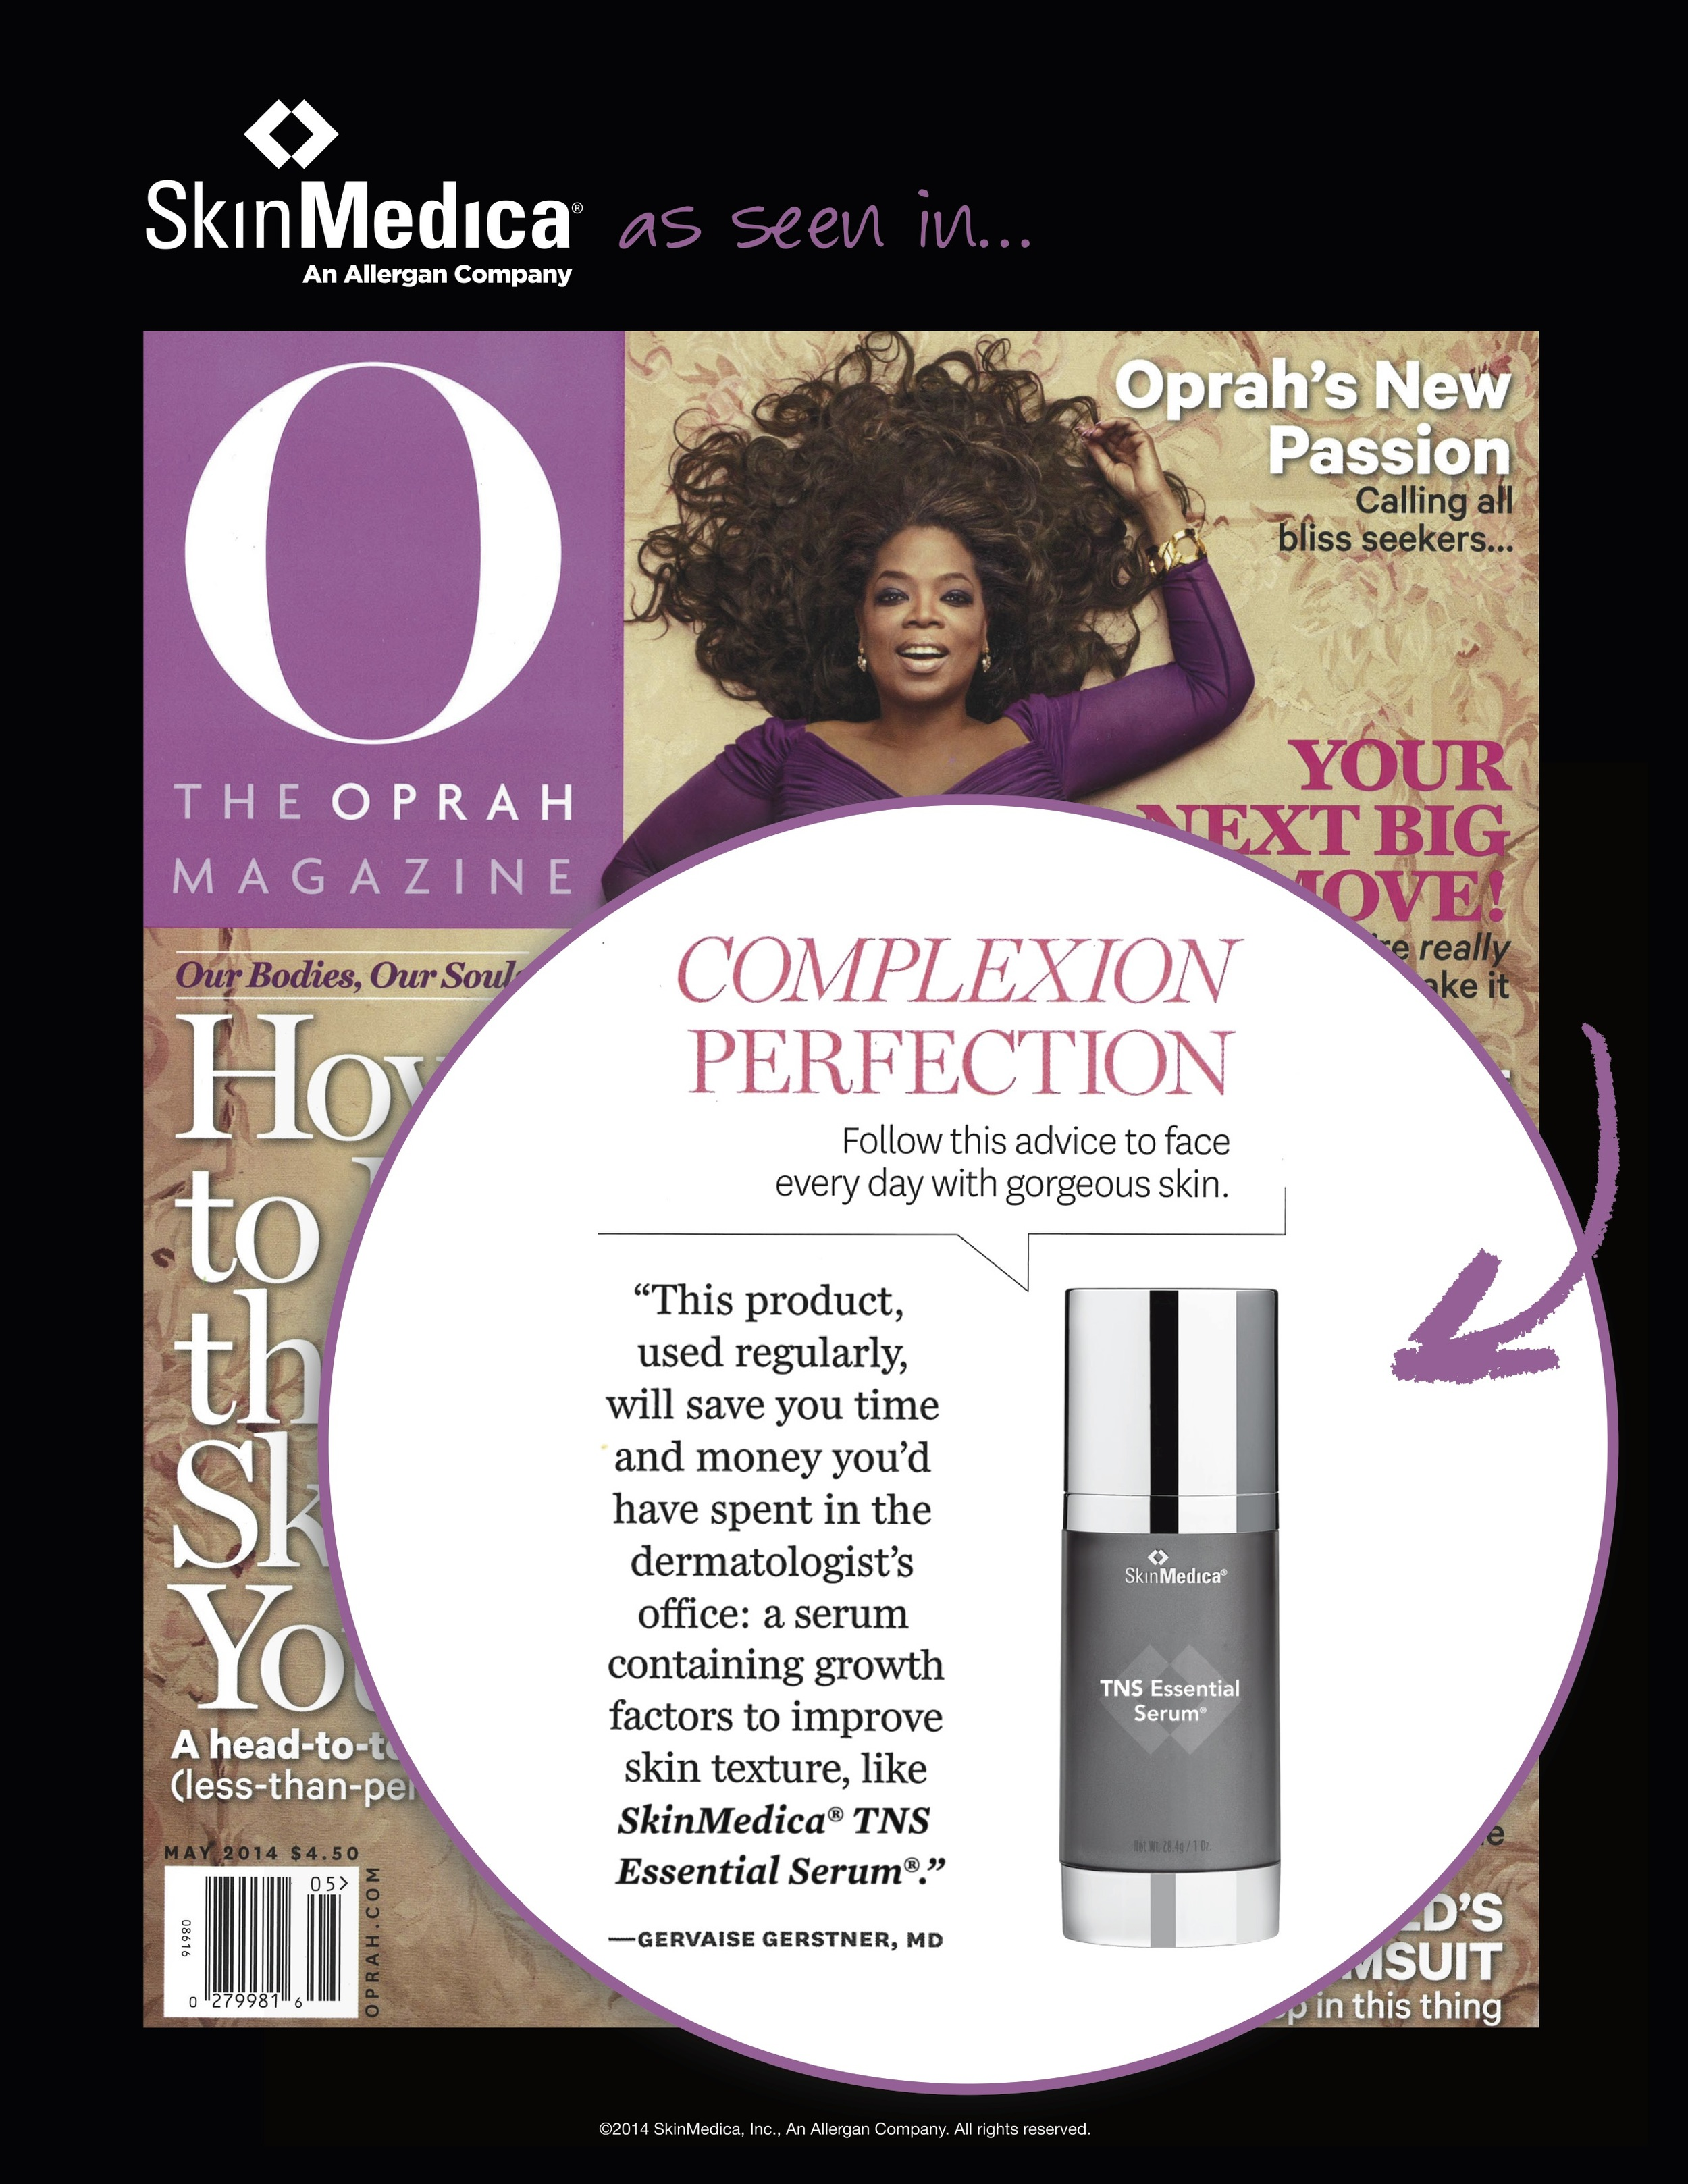 The-Oprah-Magazine-TNS-ES.jpg